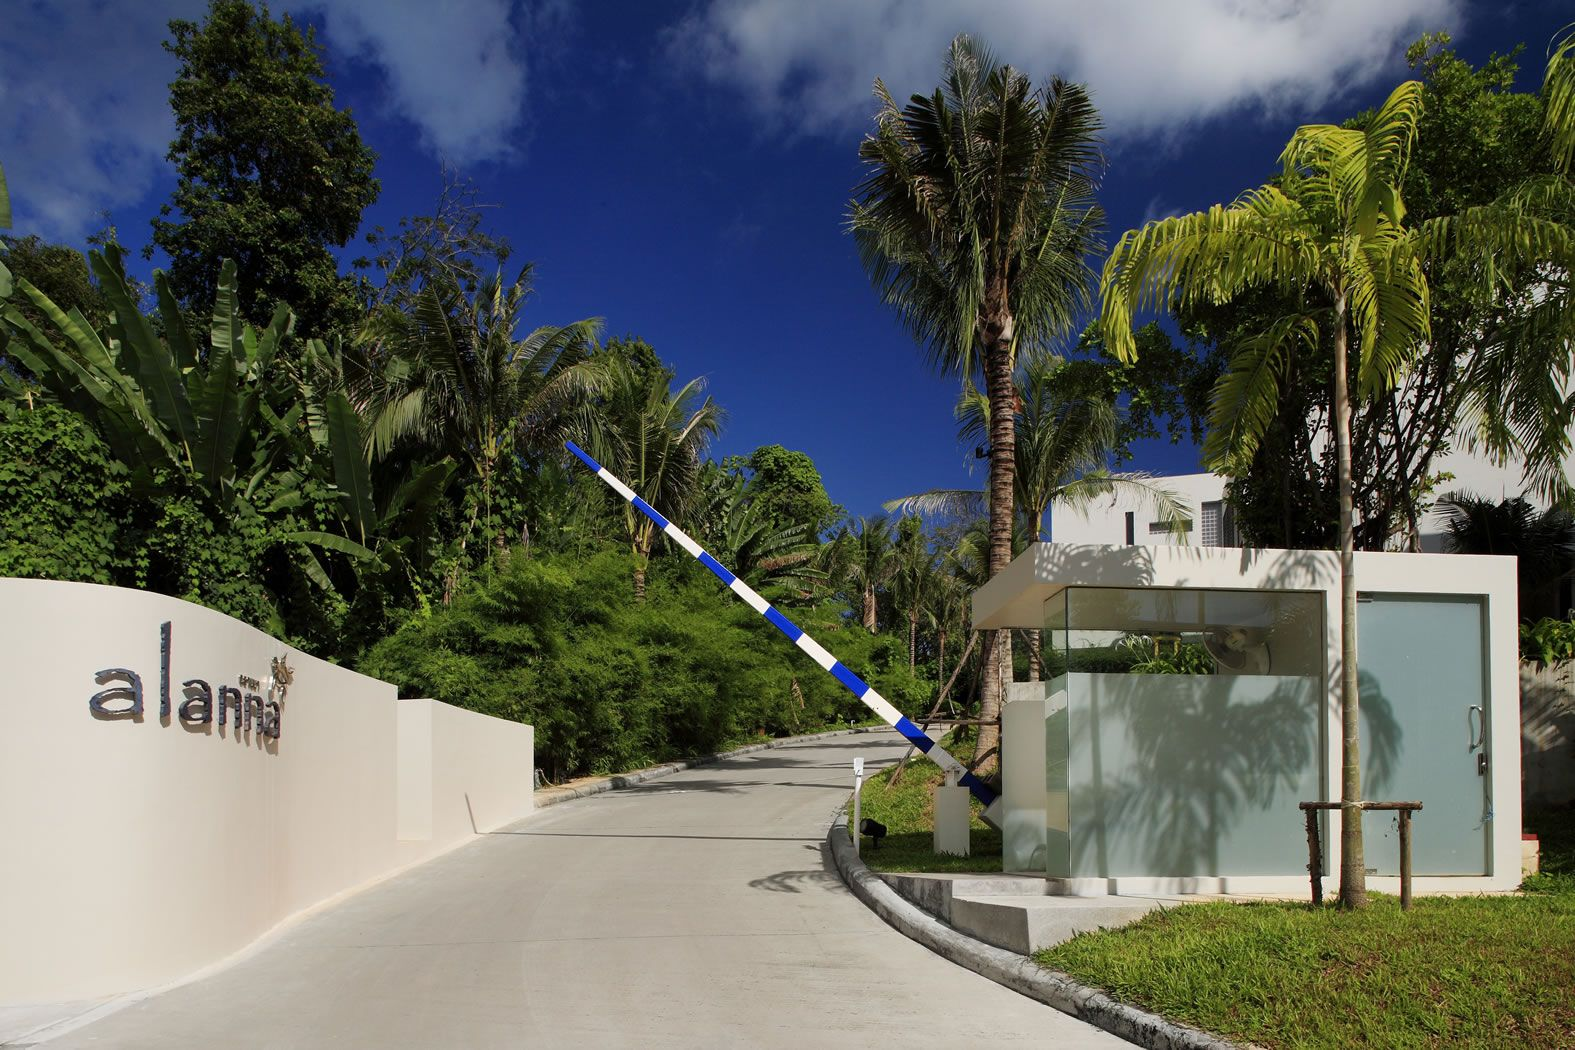 Alanna - Architecture - Original Vision | Architecture ... on Vision Outdoor Living id=38524